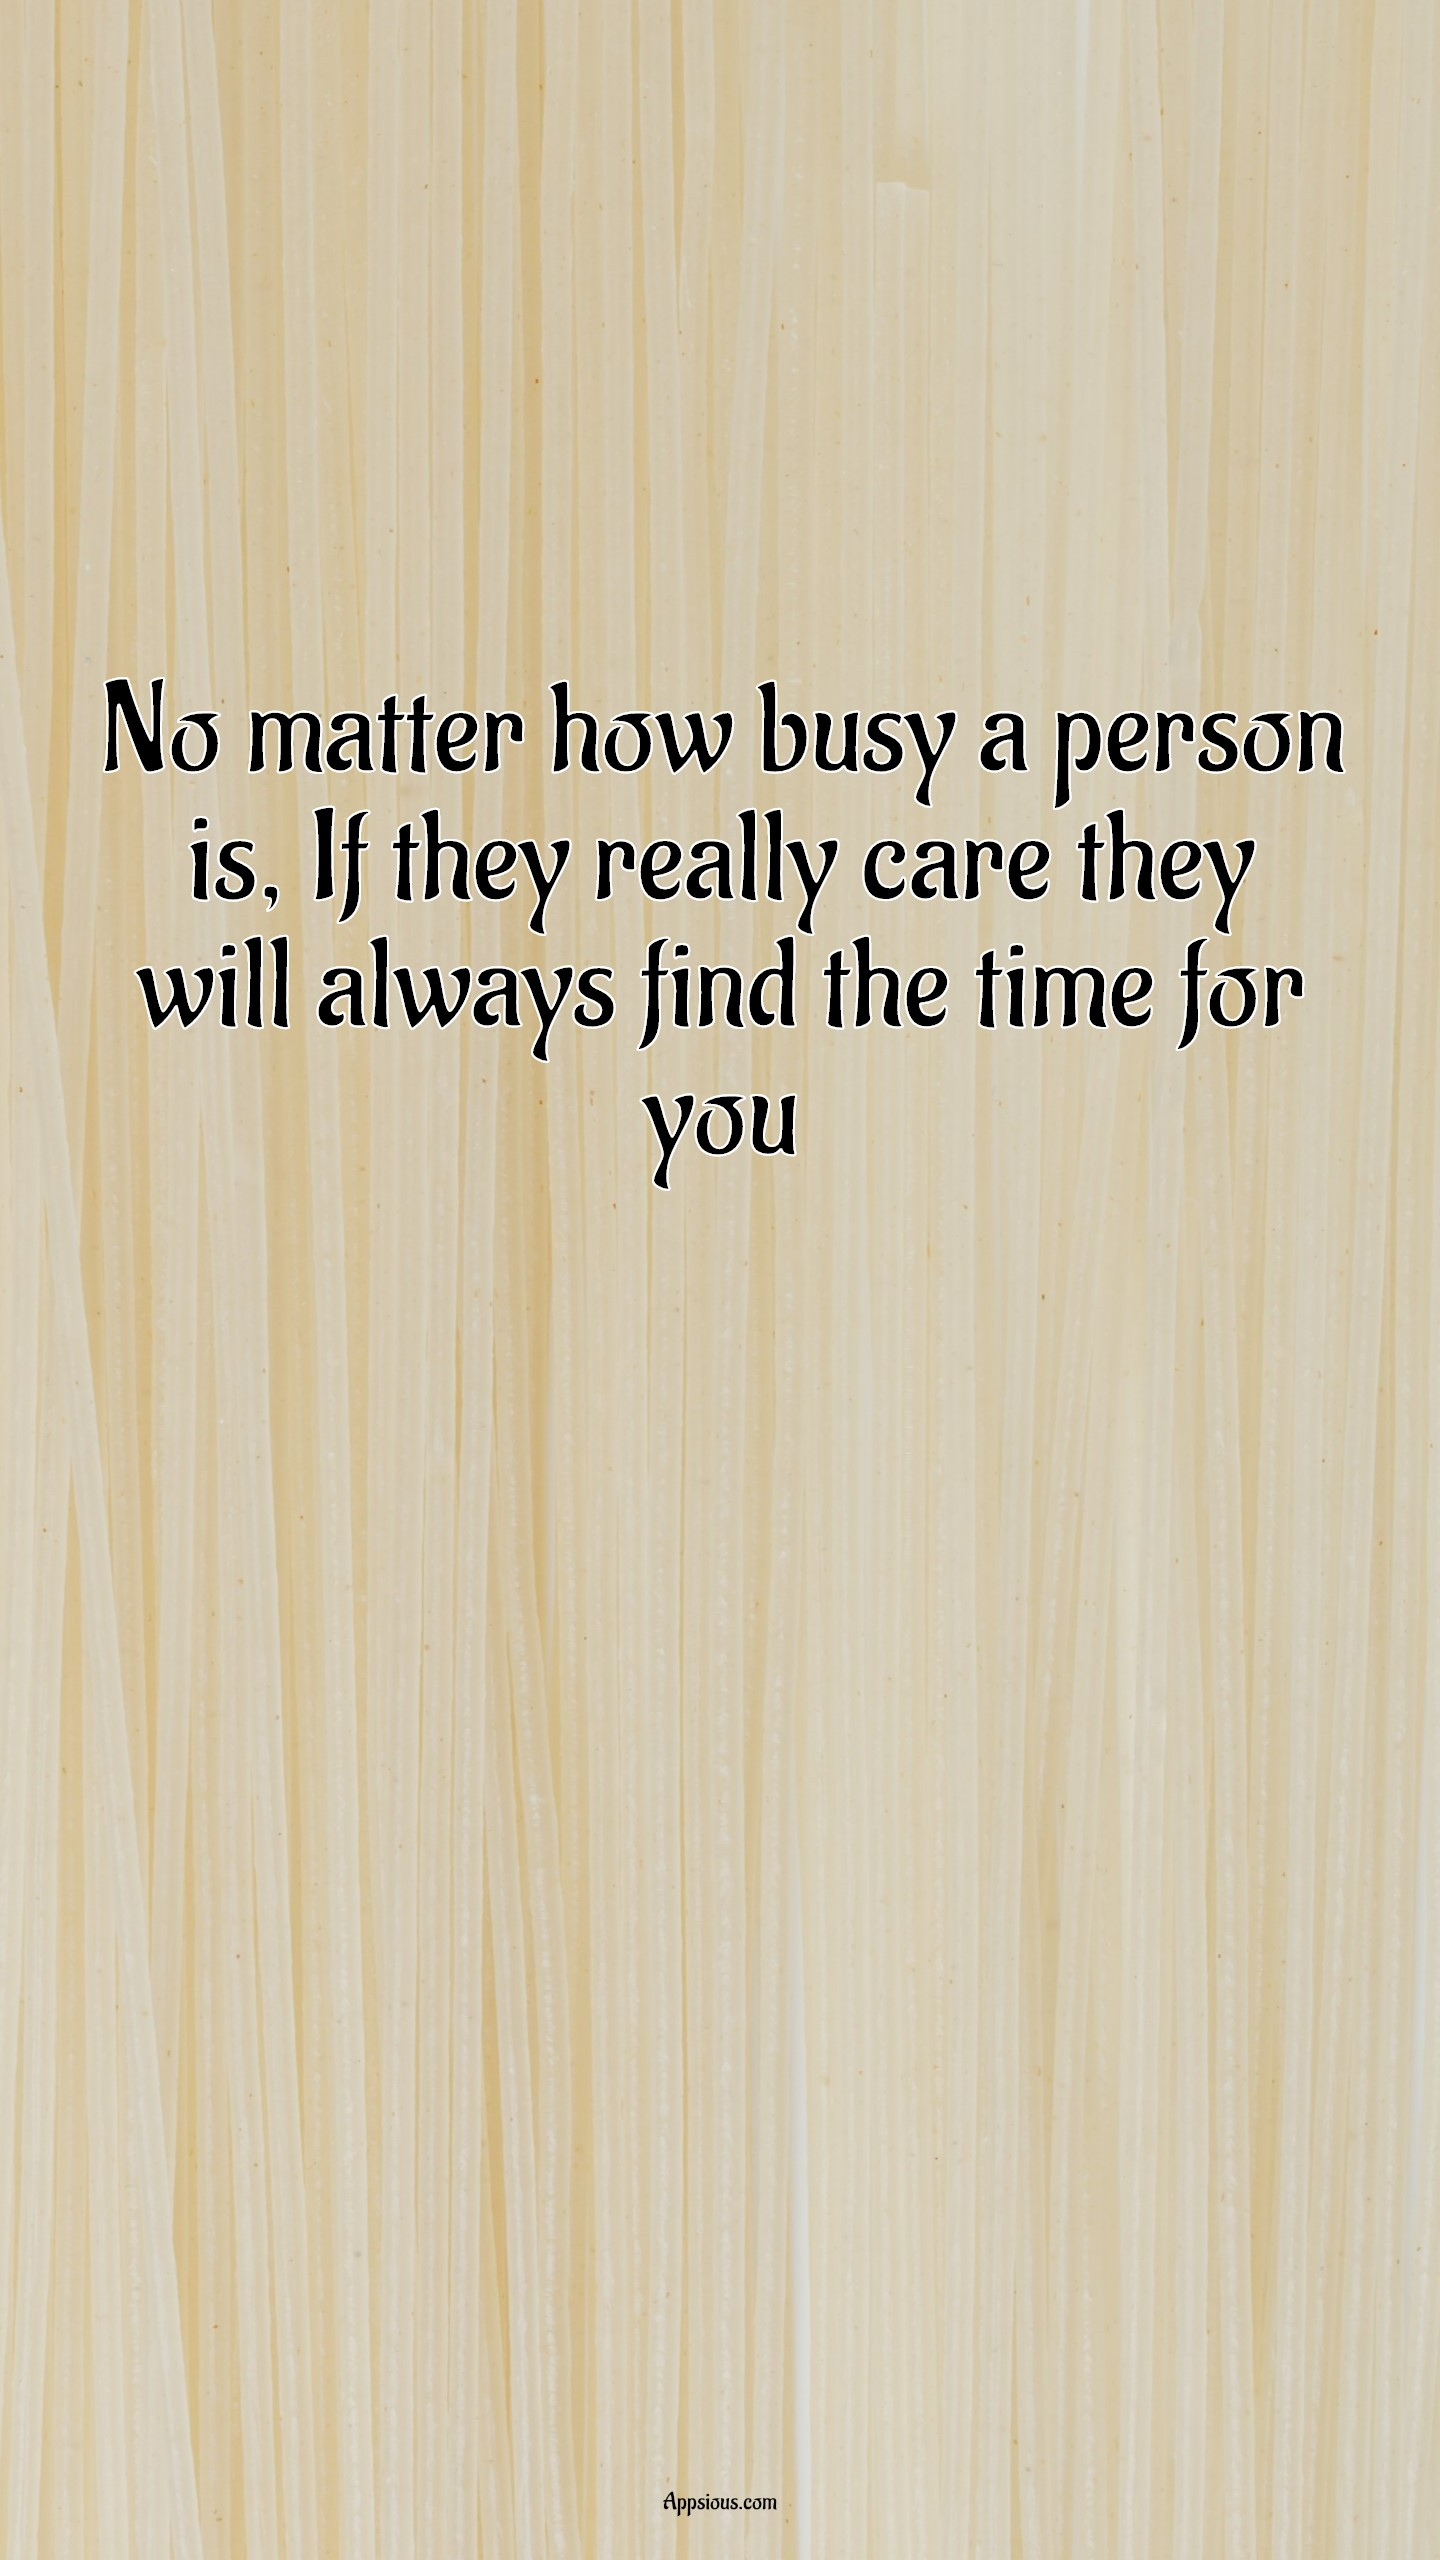 No matter how busy a person is, If they really care they will always find the time for you